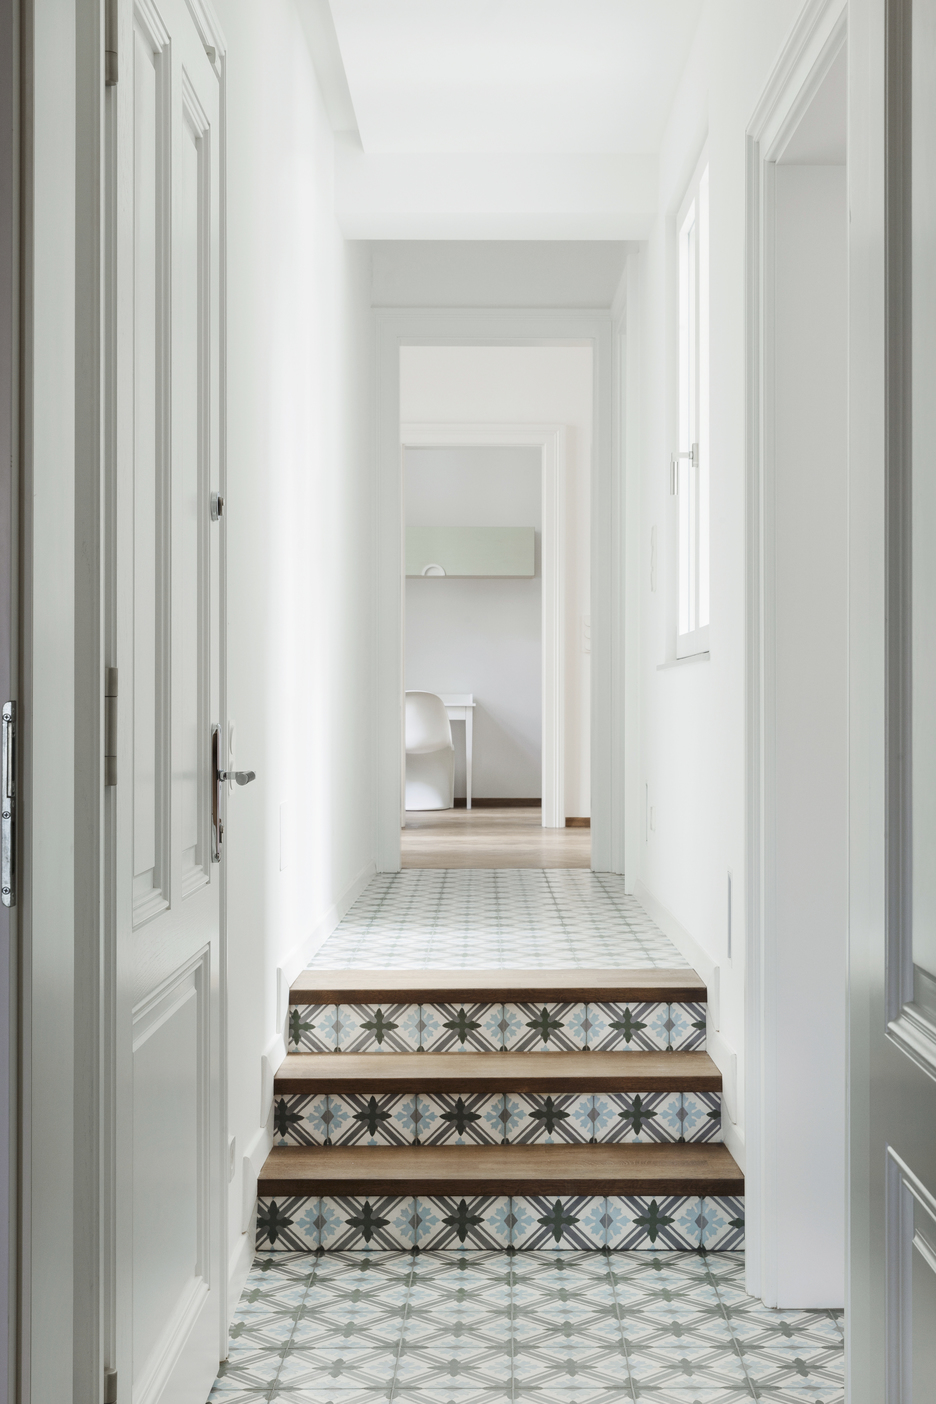 Hallway design Vienna-stairs with concrete tiles and wood-staircase design with concrete tiles Vienna